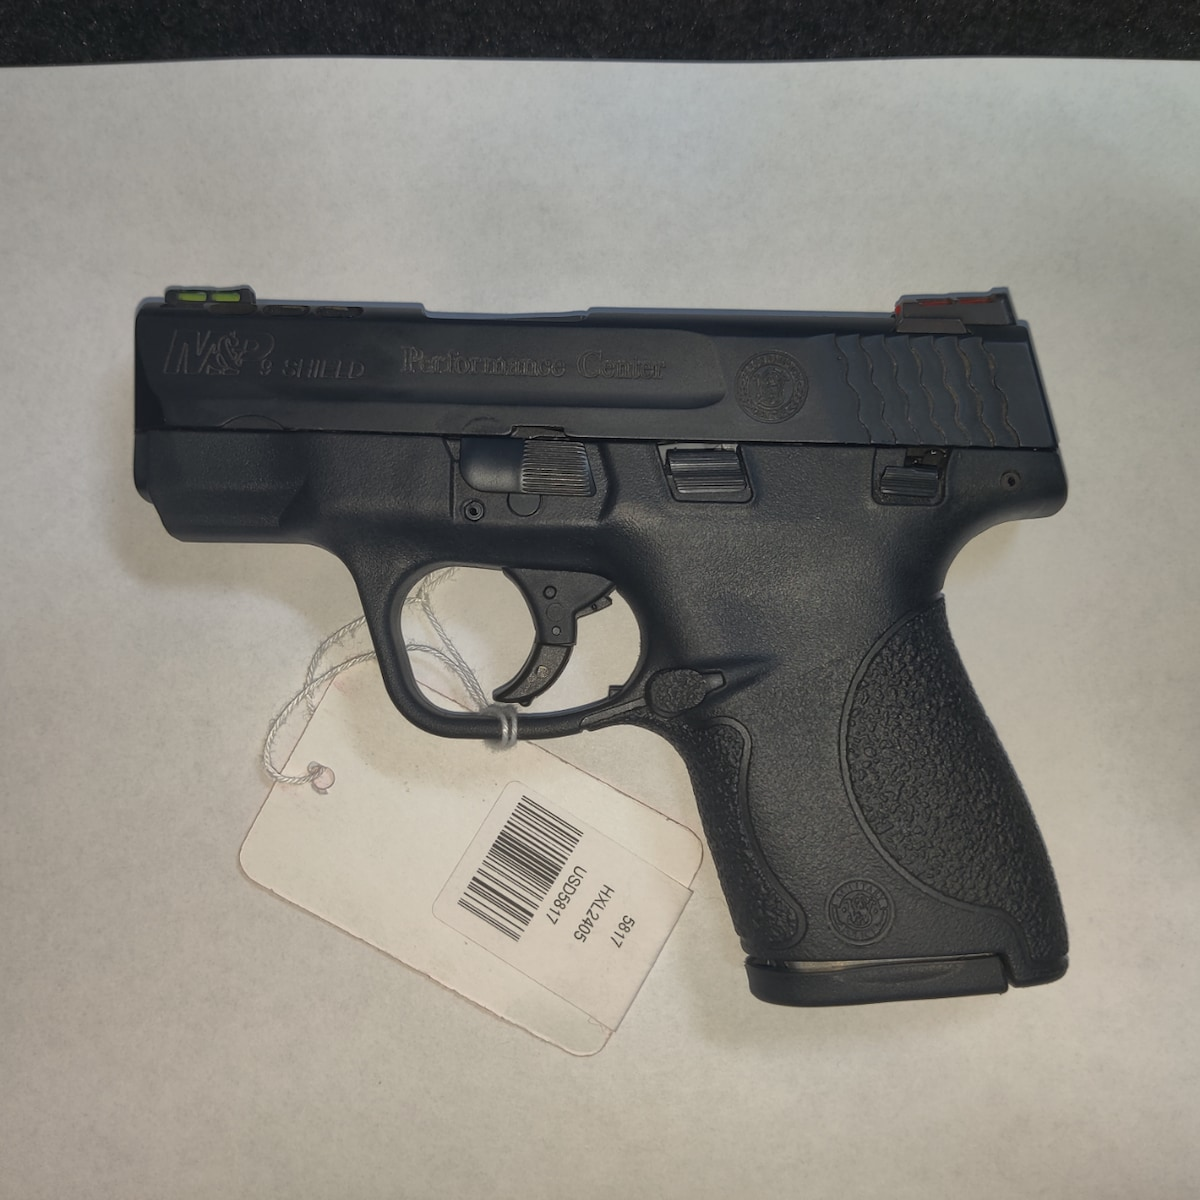 SMITH & WESSON M&P9 SHIELD PERFORMANCE CENTER Ported Slide